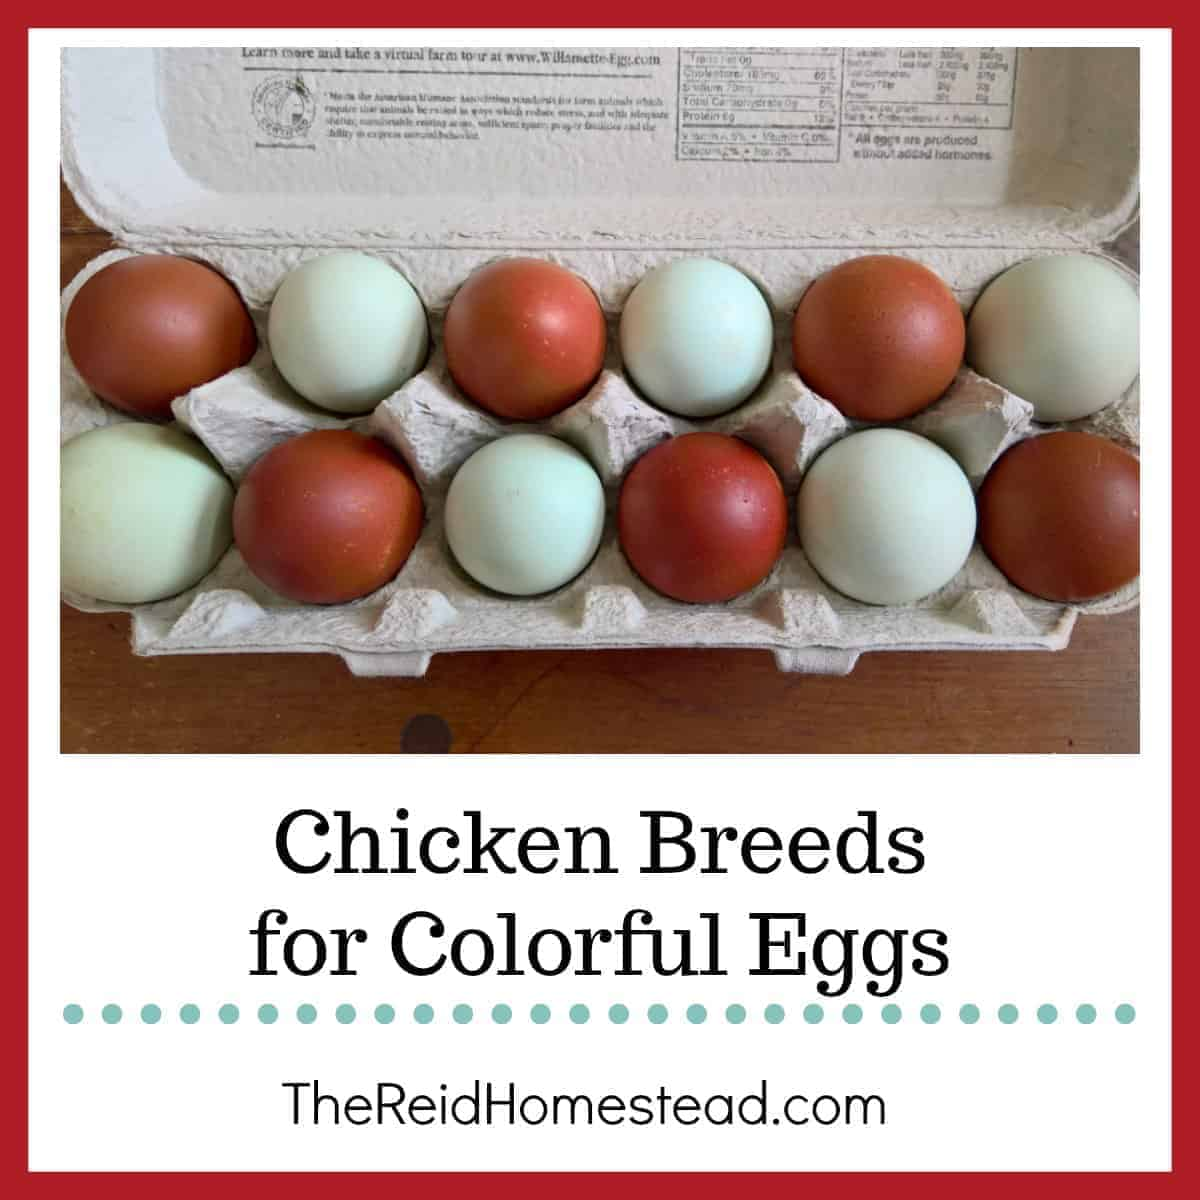 Chicken Breeds for Colorful Eggs